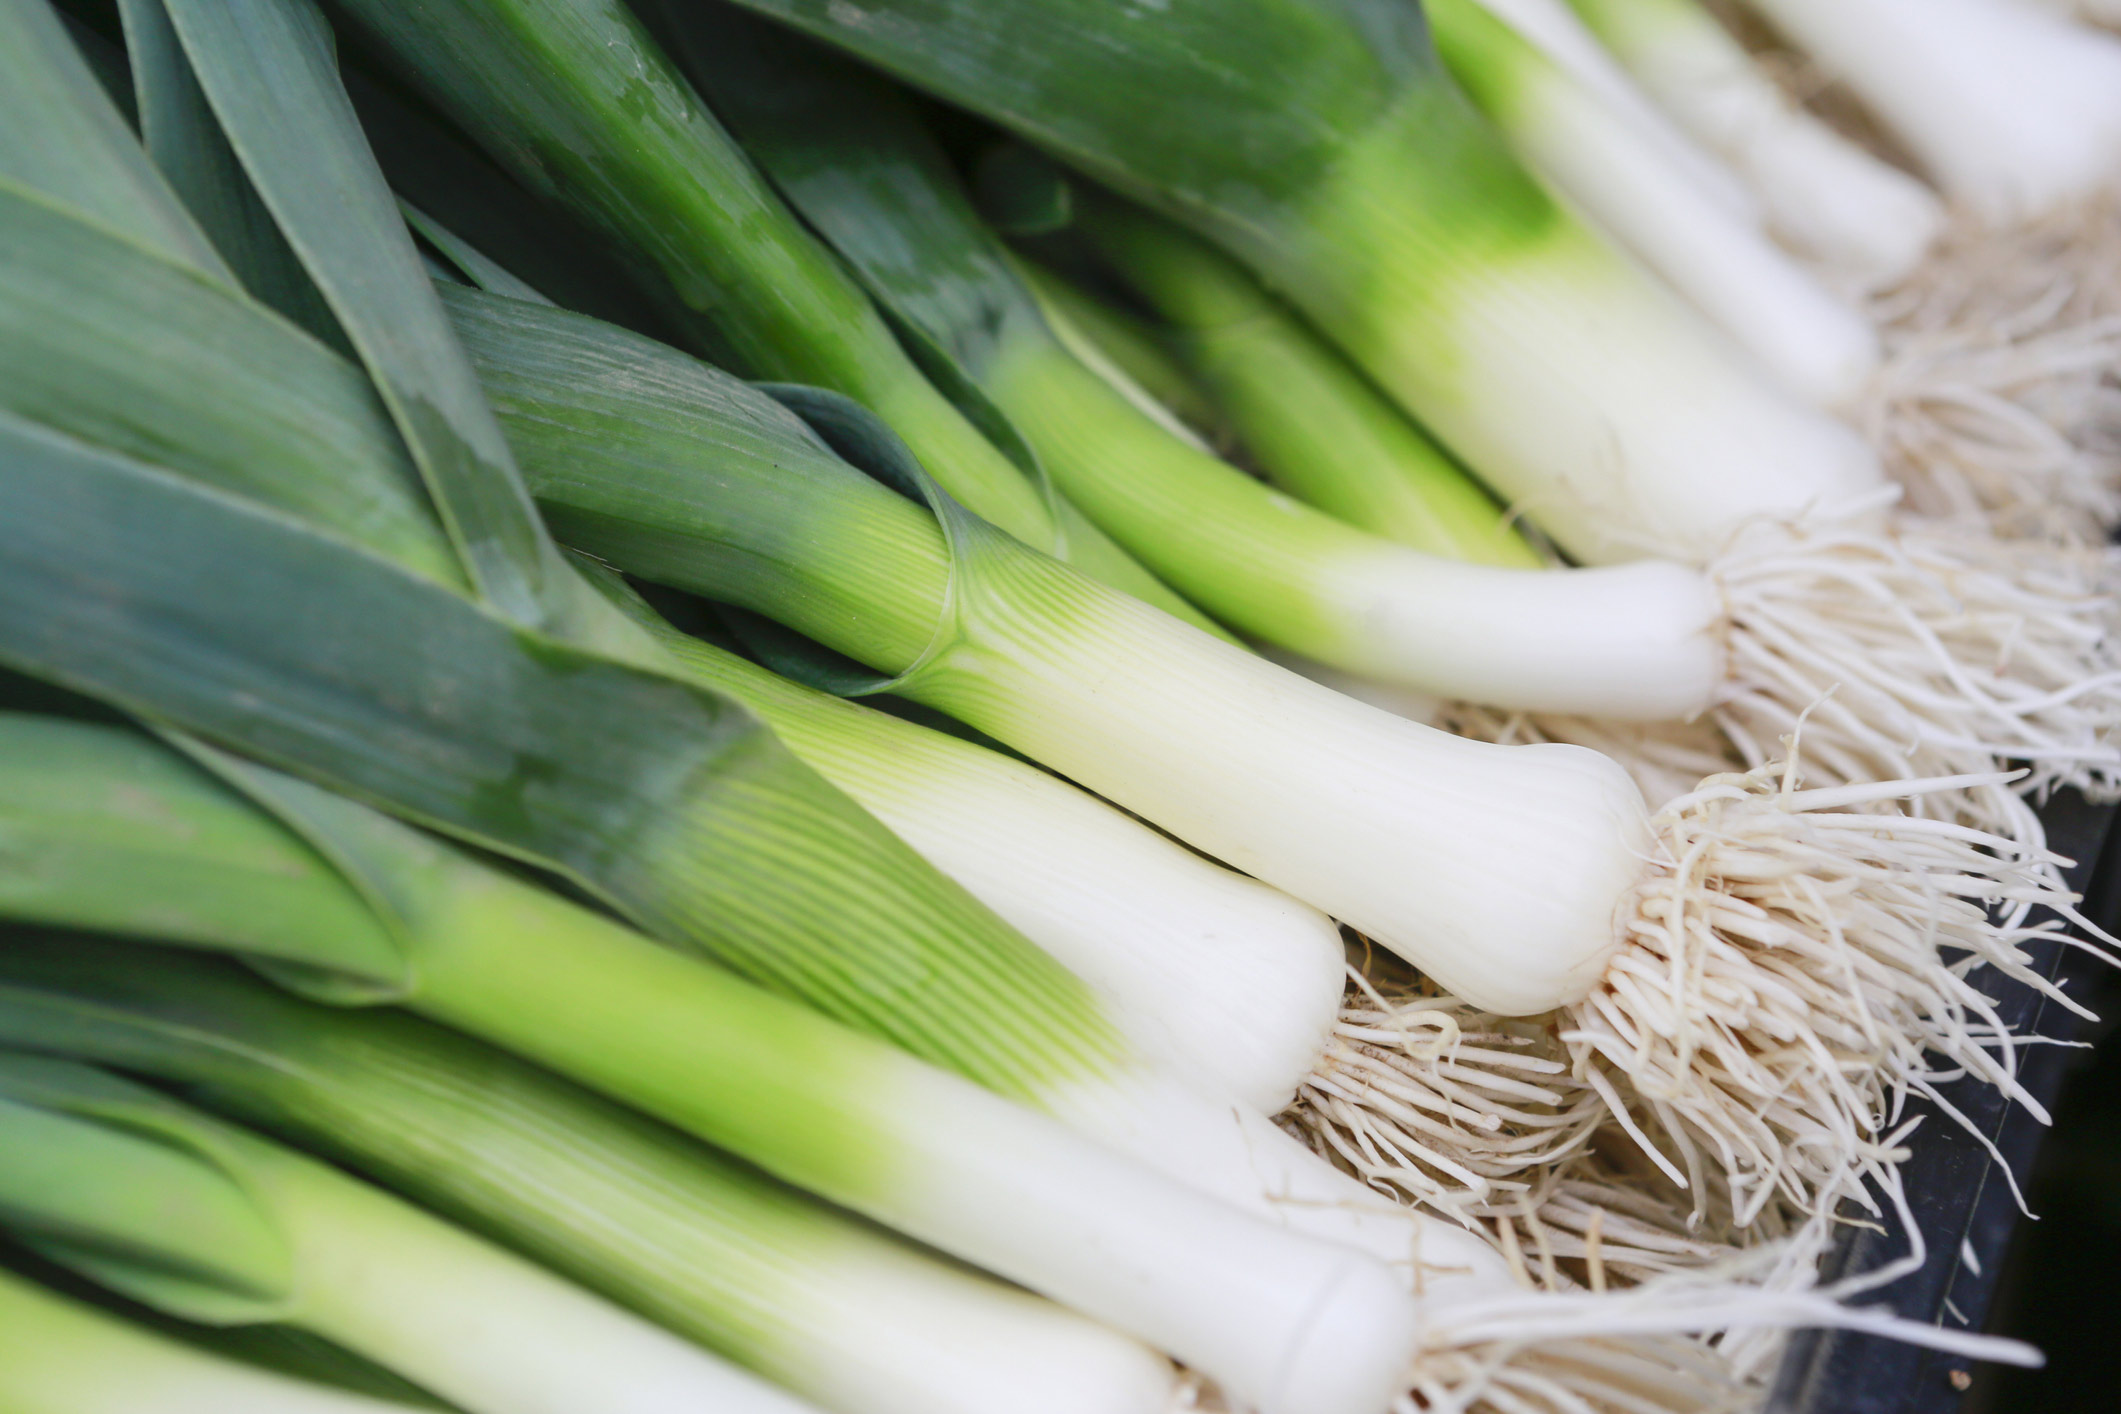 Allium vegetables: Scallions